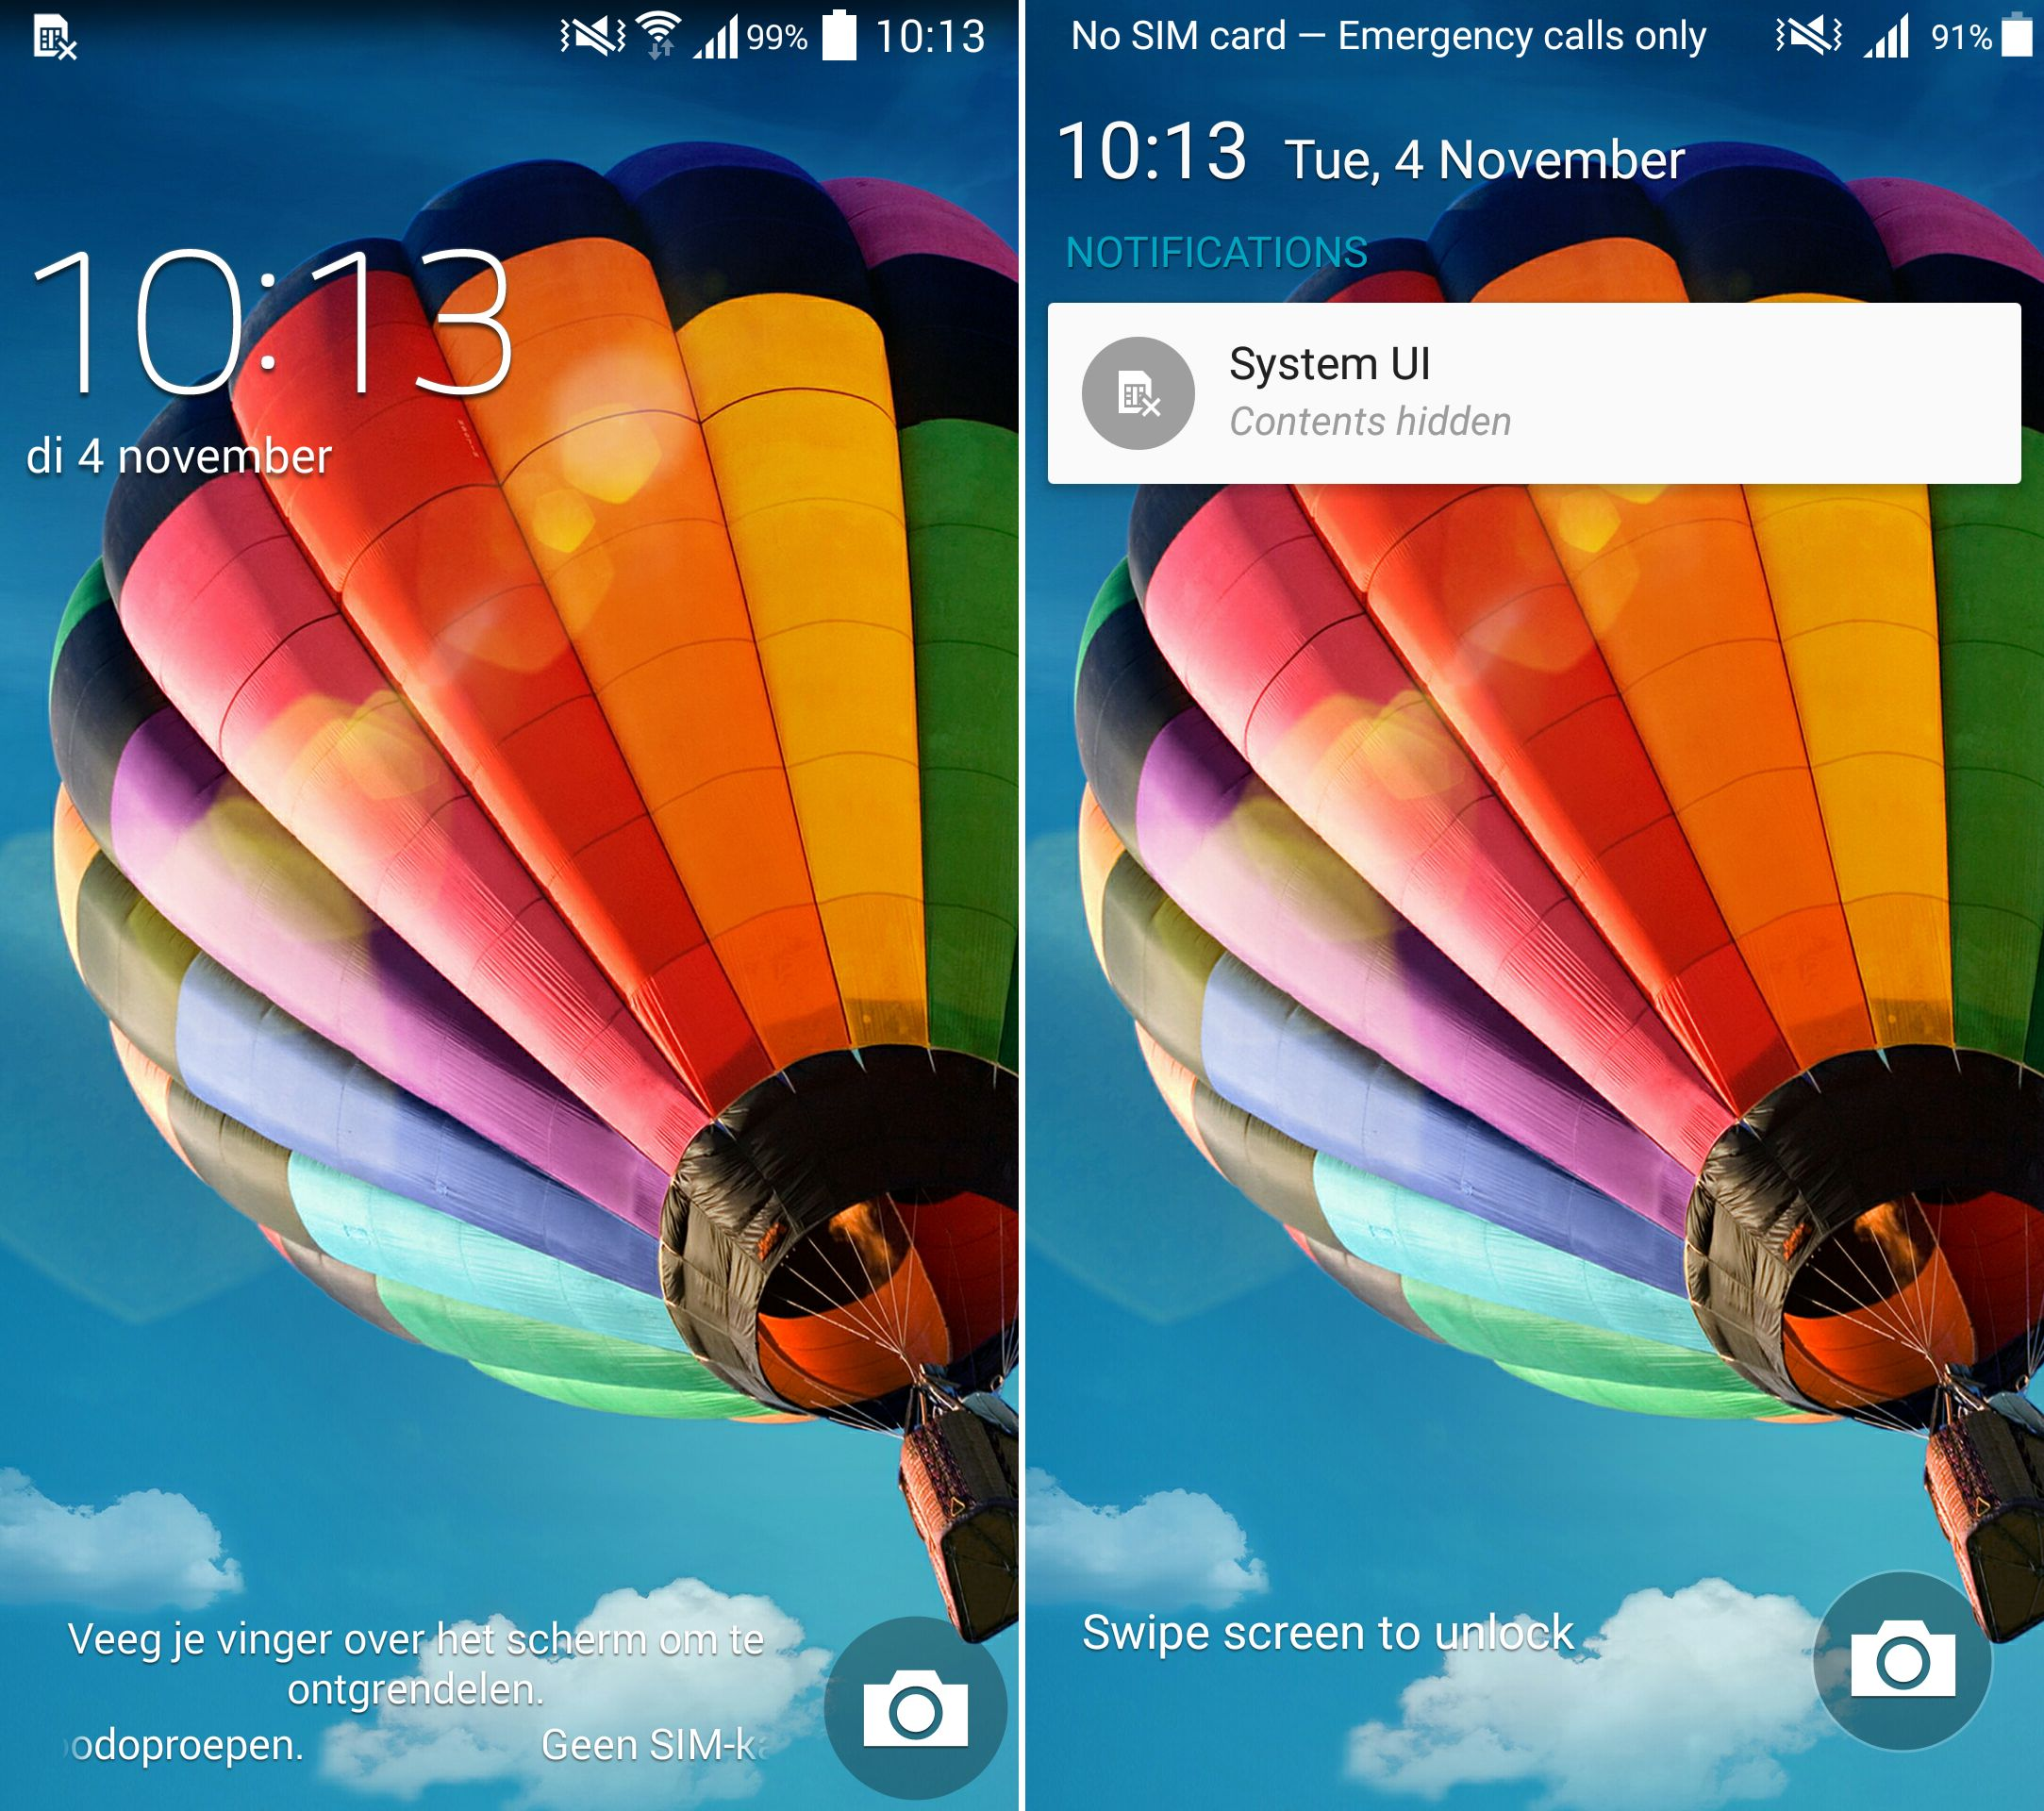 android 4.4.2 update to lollipop